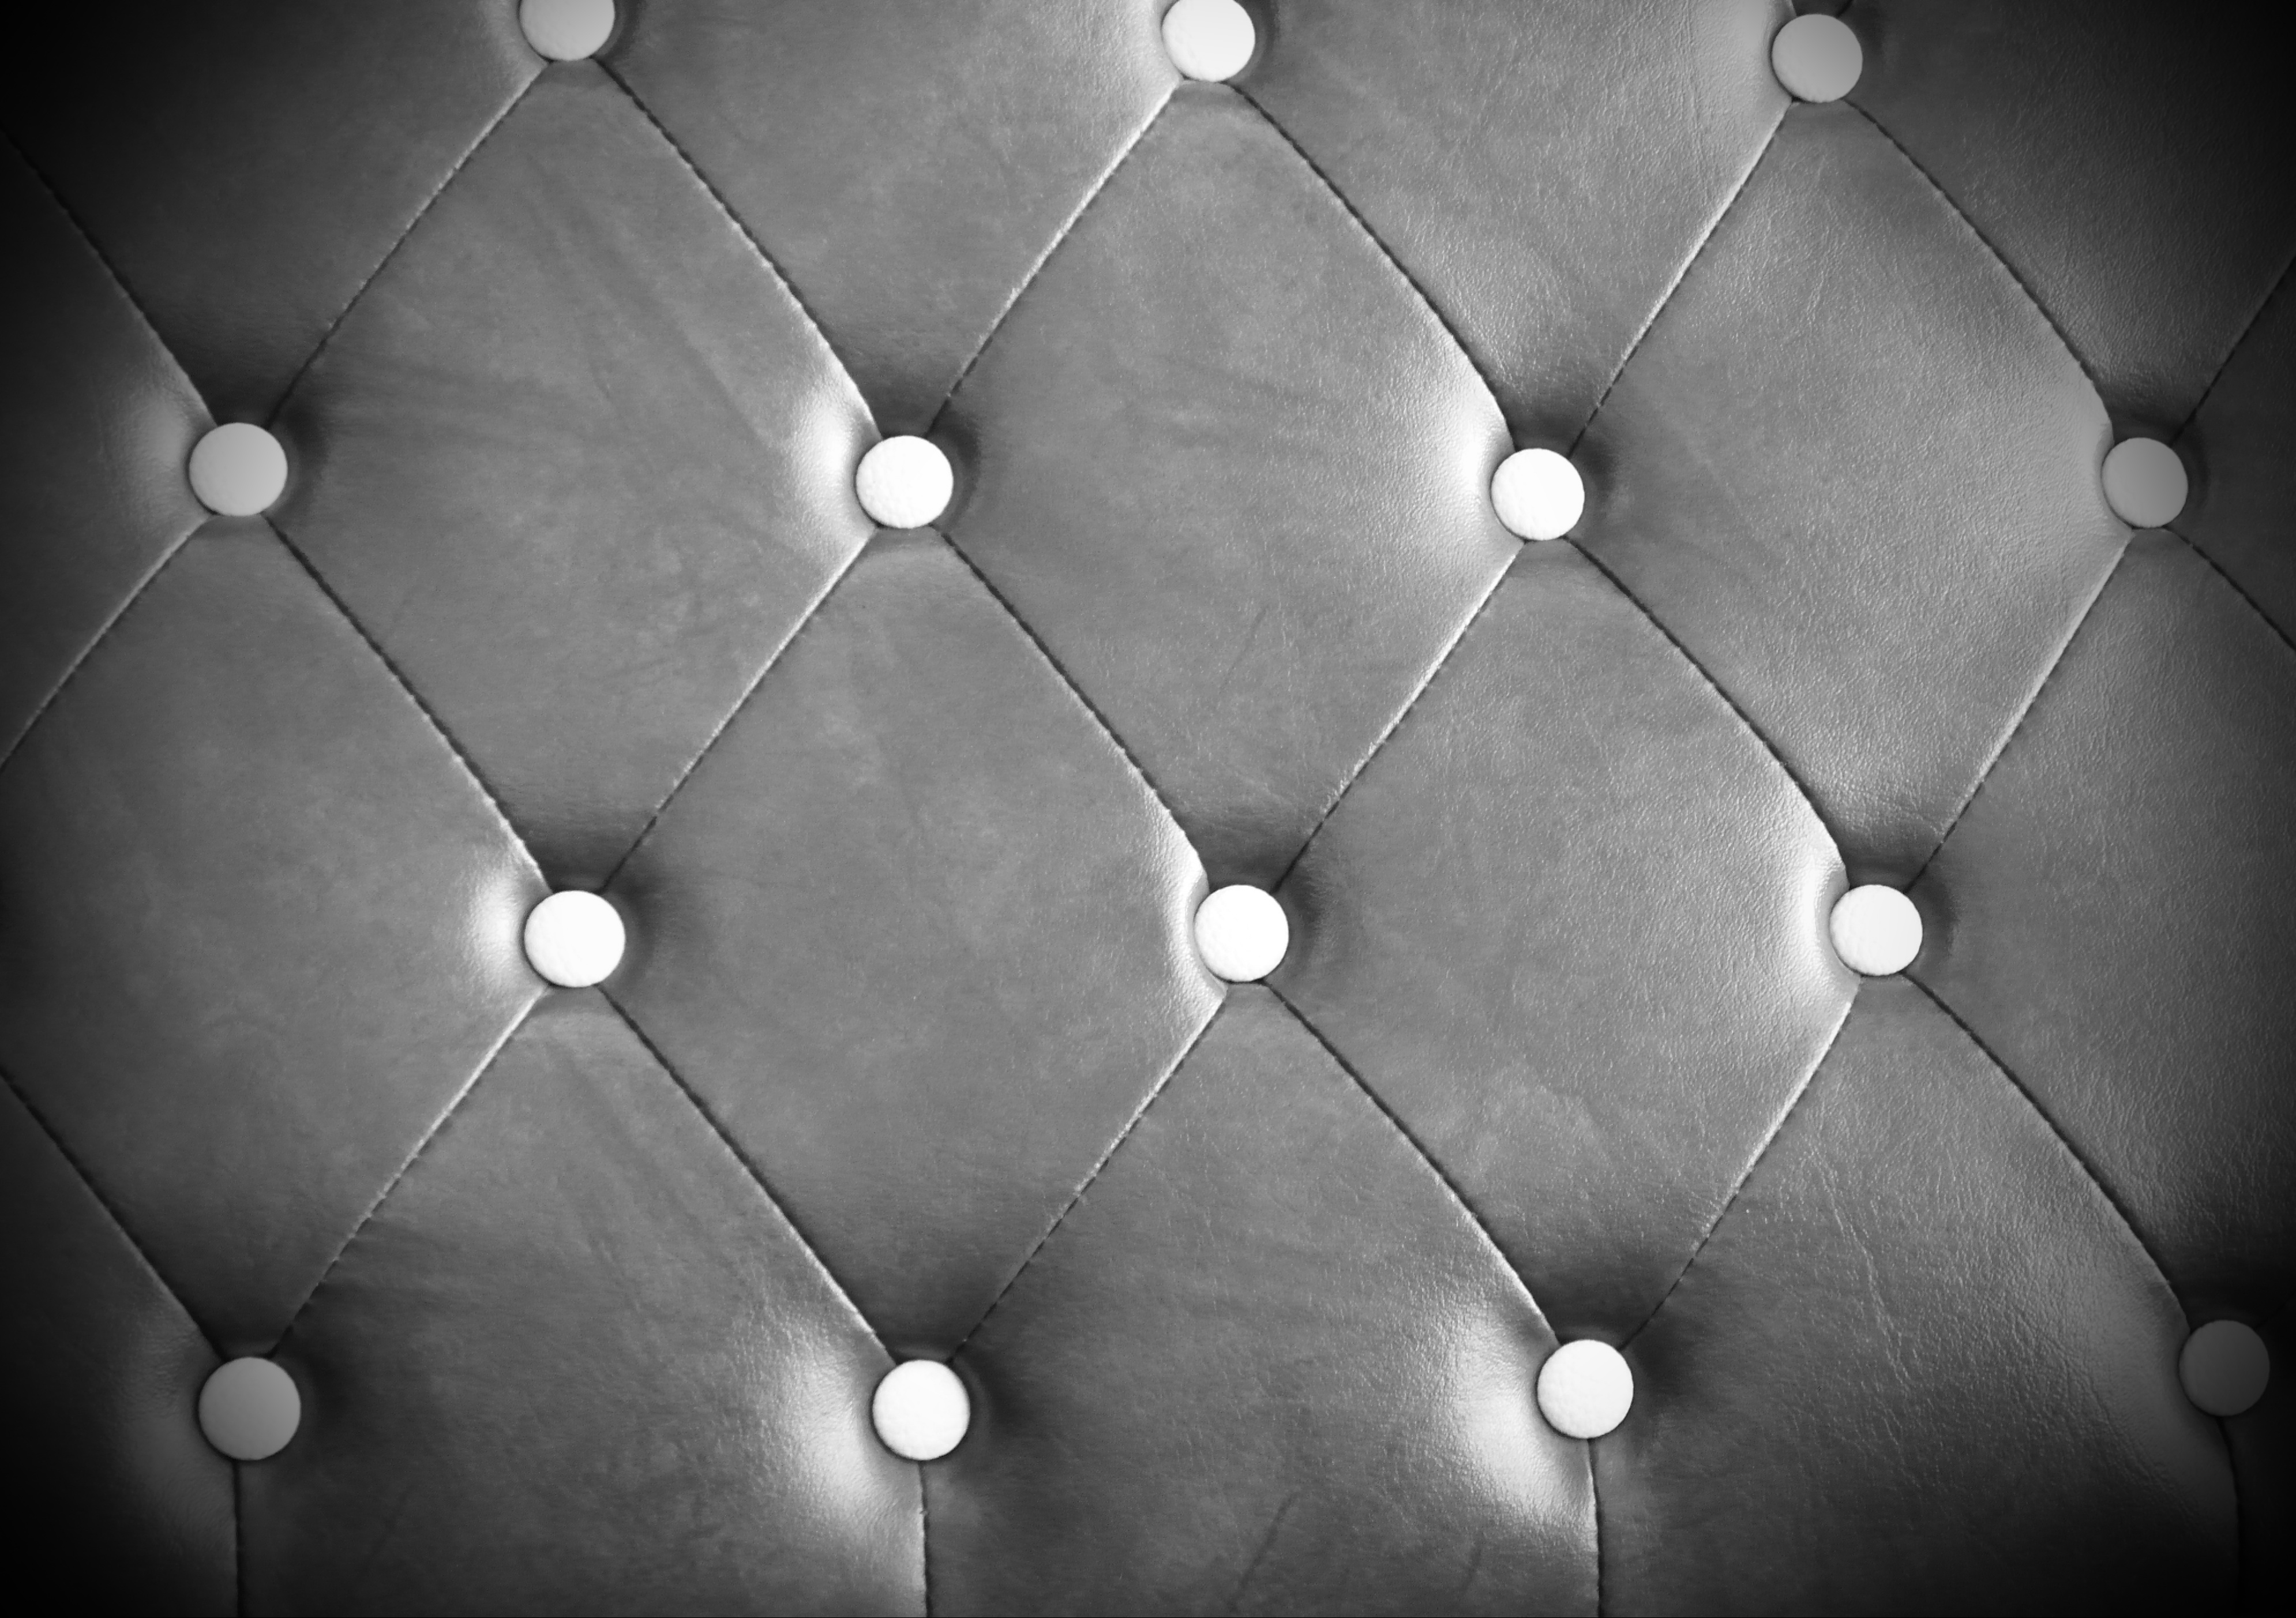 Vintage Leather Texture, Abstract, Seat, Leather, Lines, HQ Photo